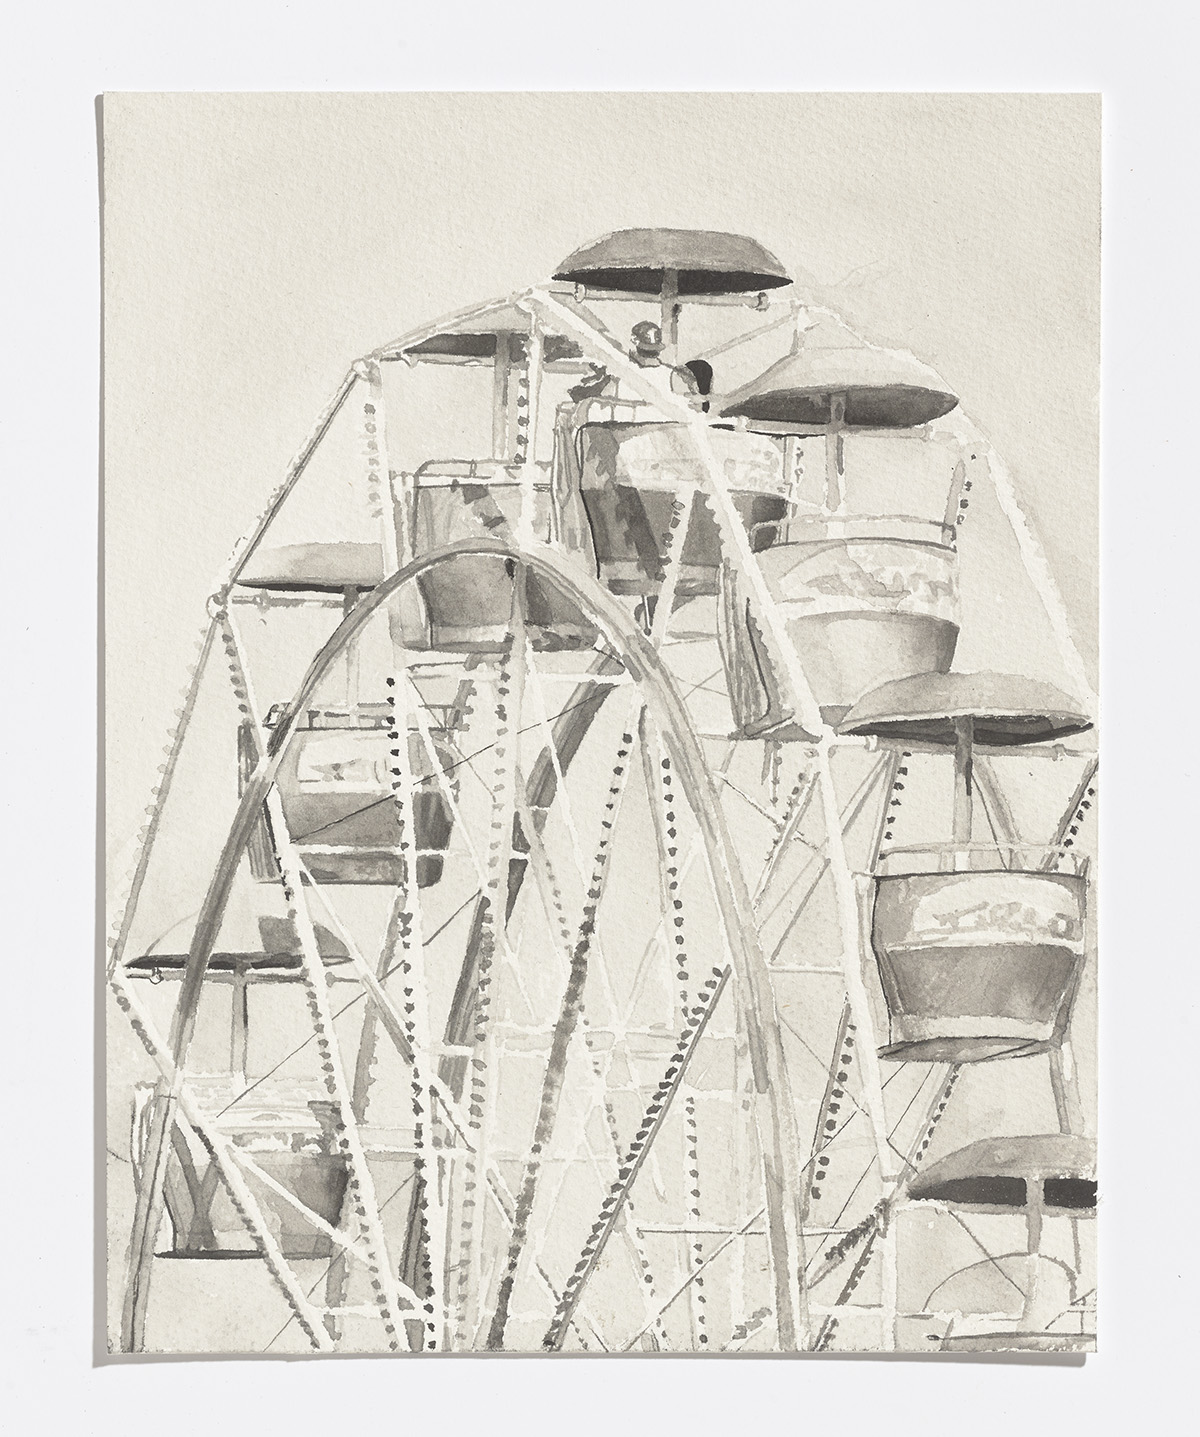 Ferris Wheel, 2017, india ink on paper, 11.25 x 8 in.$1100 CAD $900 USD